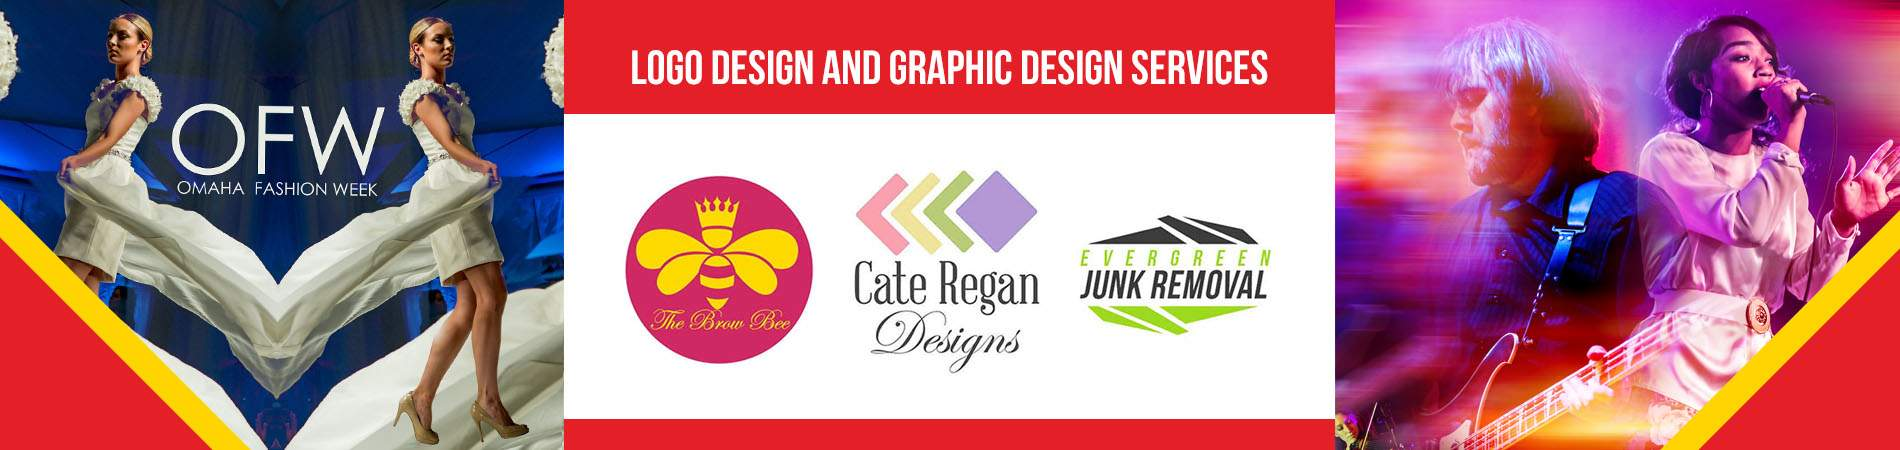 New York Logo Design Services and New York Graphic Design Services